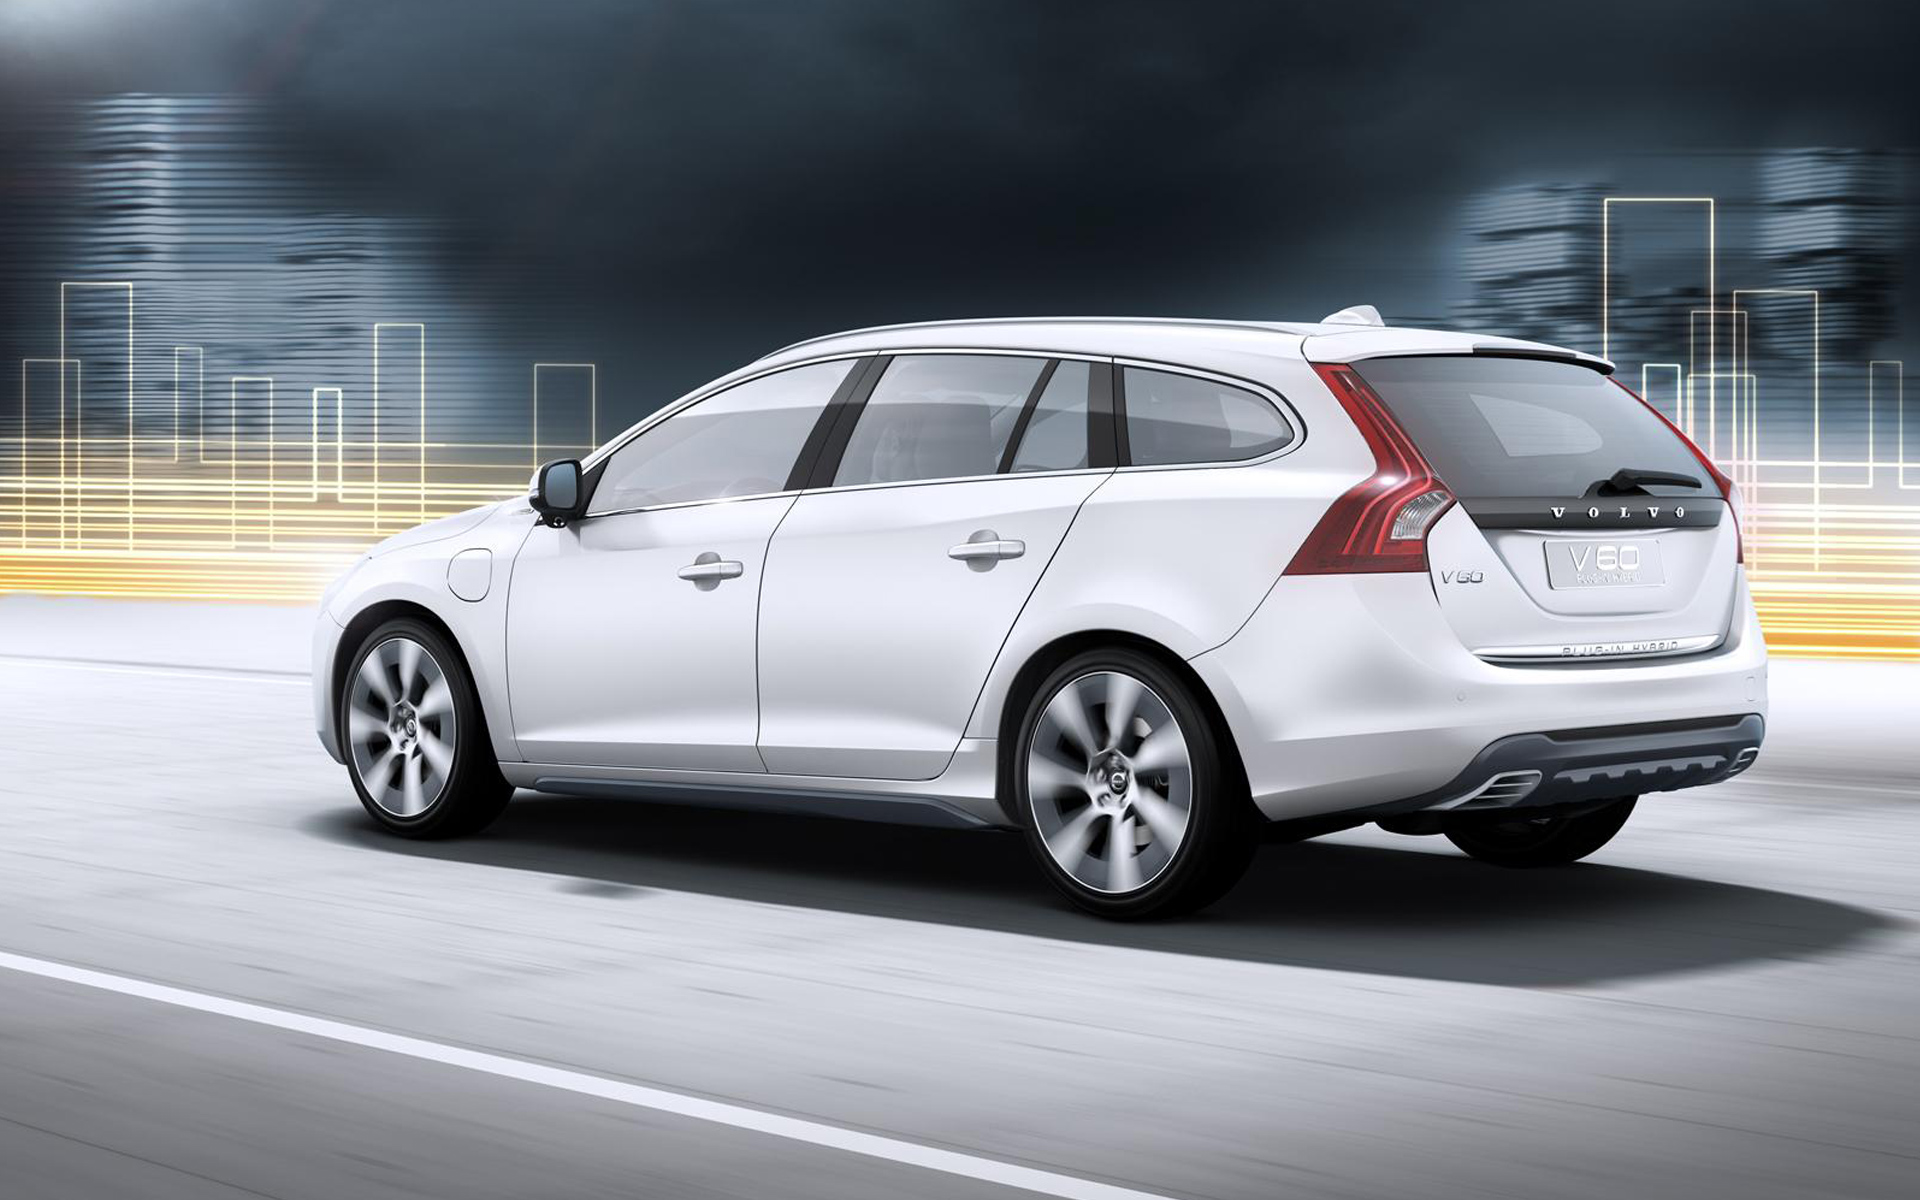 2012 volvo v60 hybrid 2 wallpaper hd car wallpapers id 2298. Black Bedroom Furniture Sets. Home Design Ideas